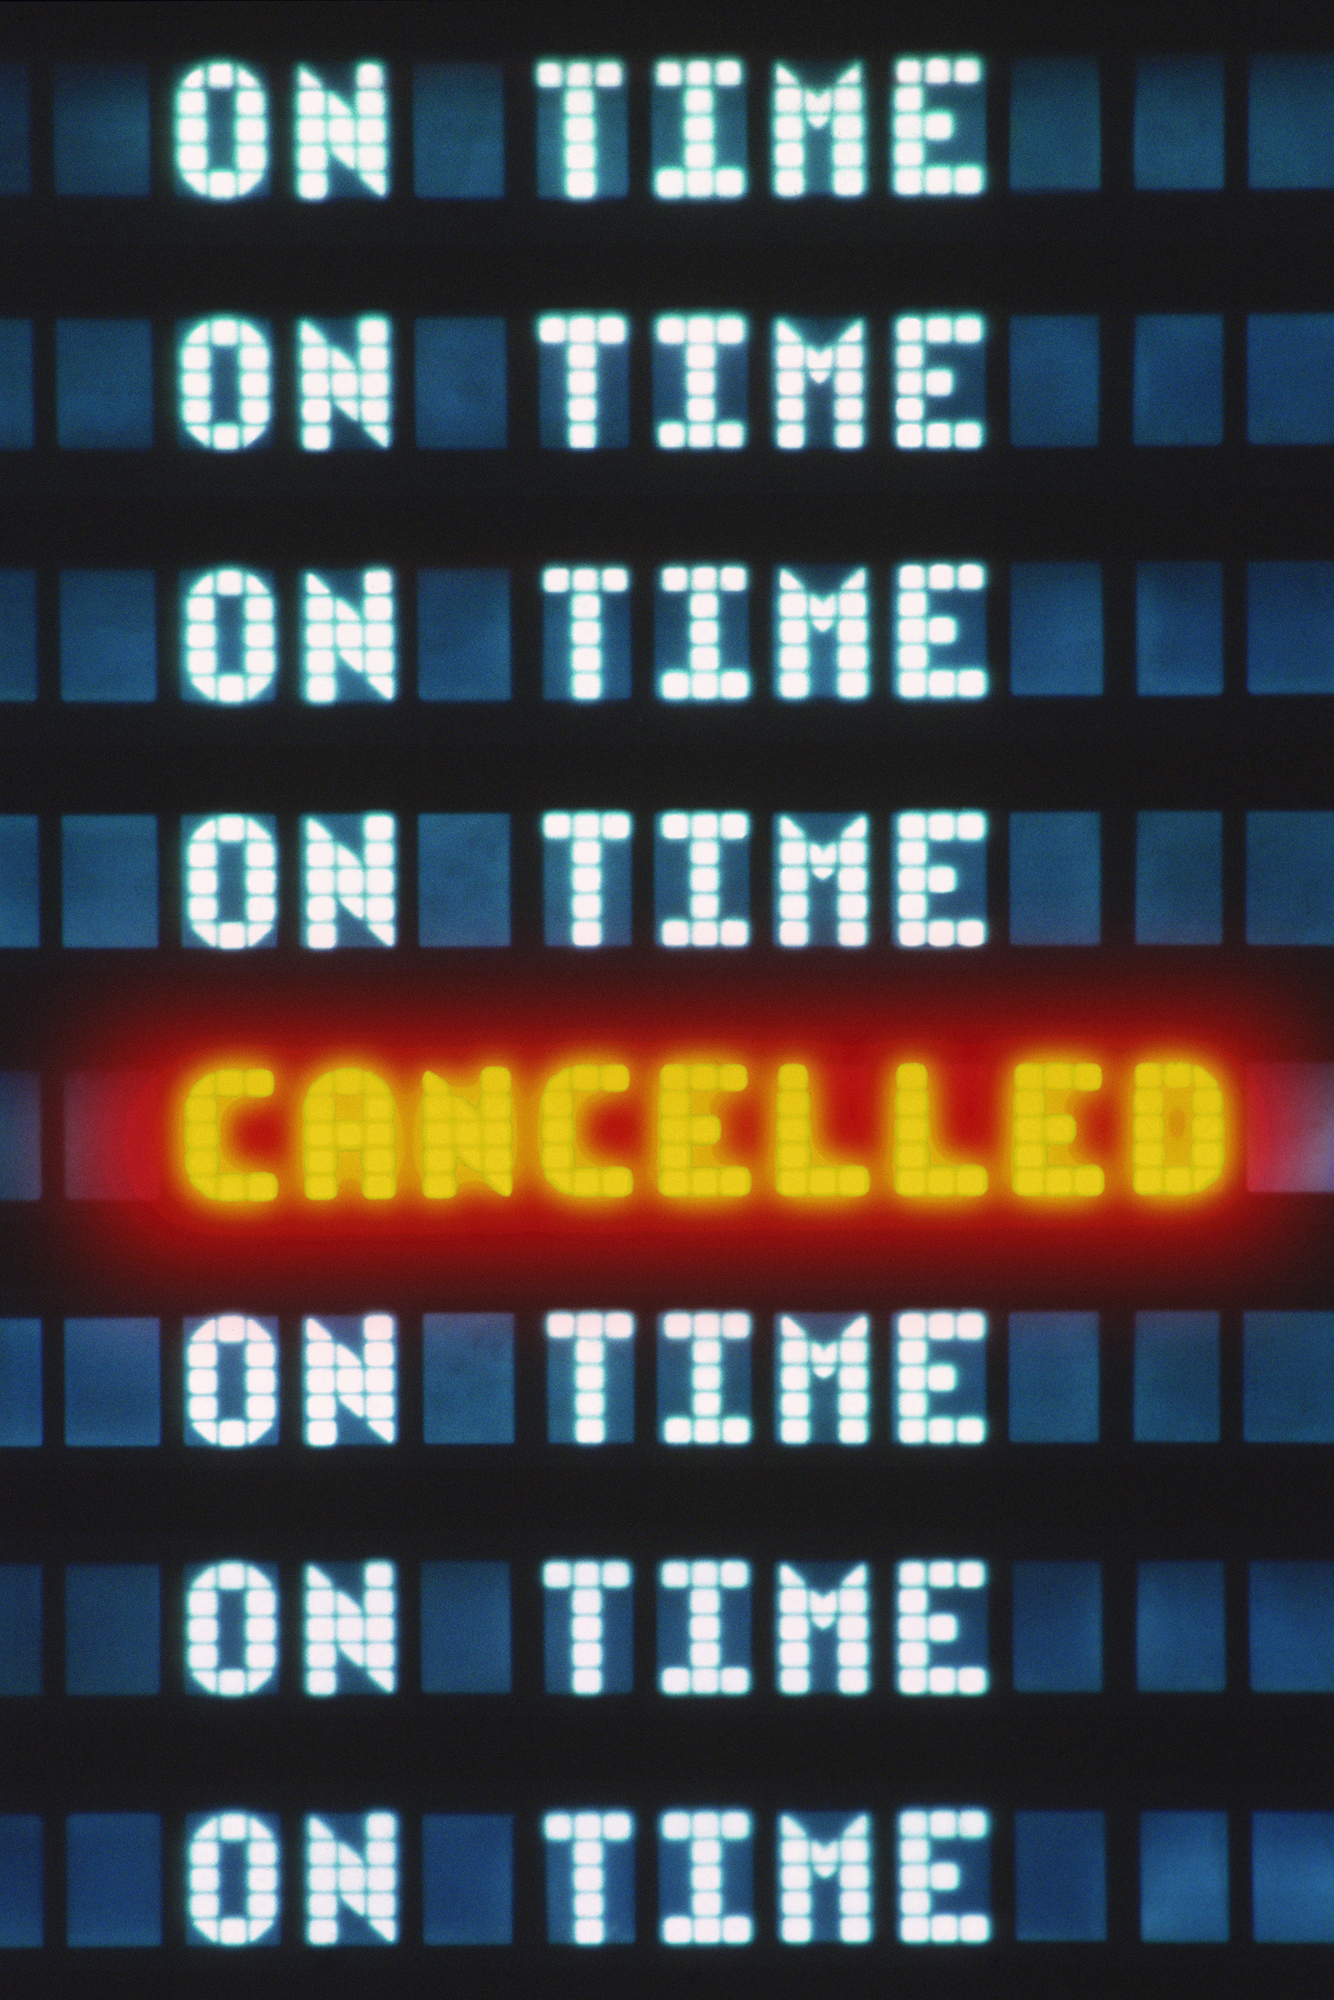 Flight cancelled display at airport